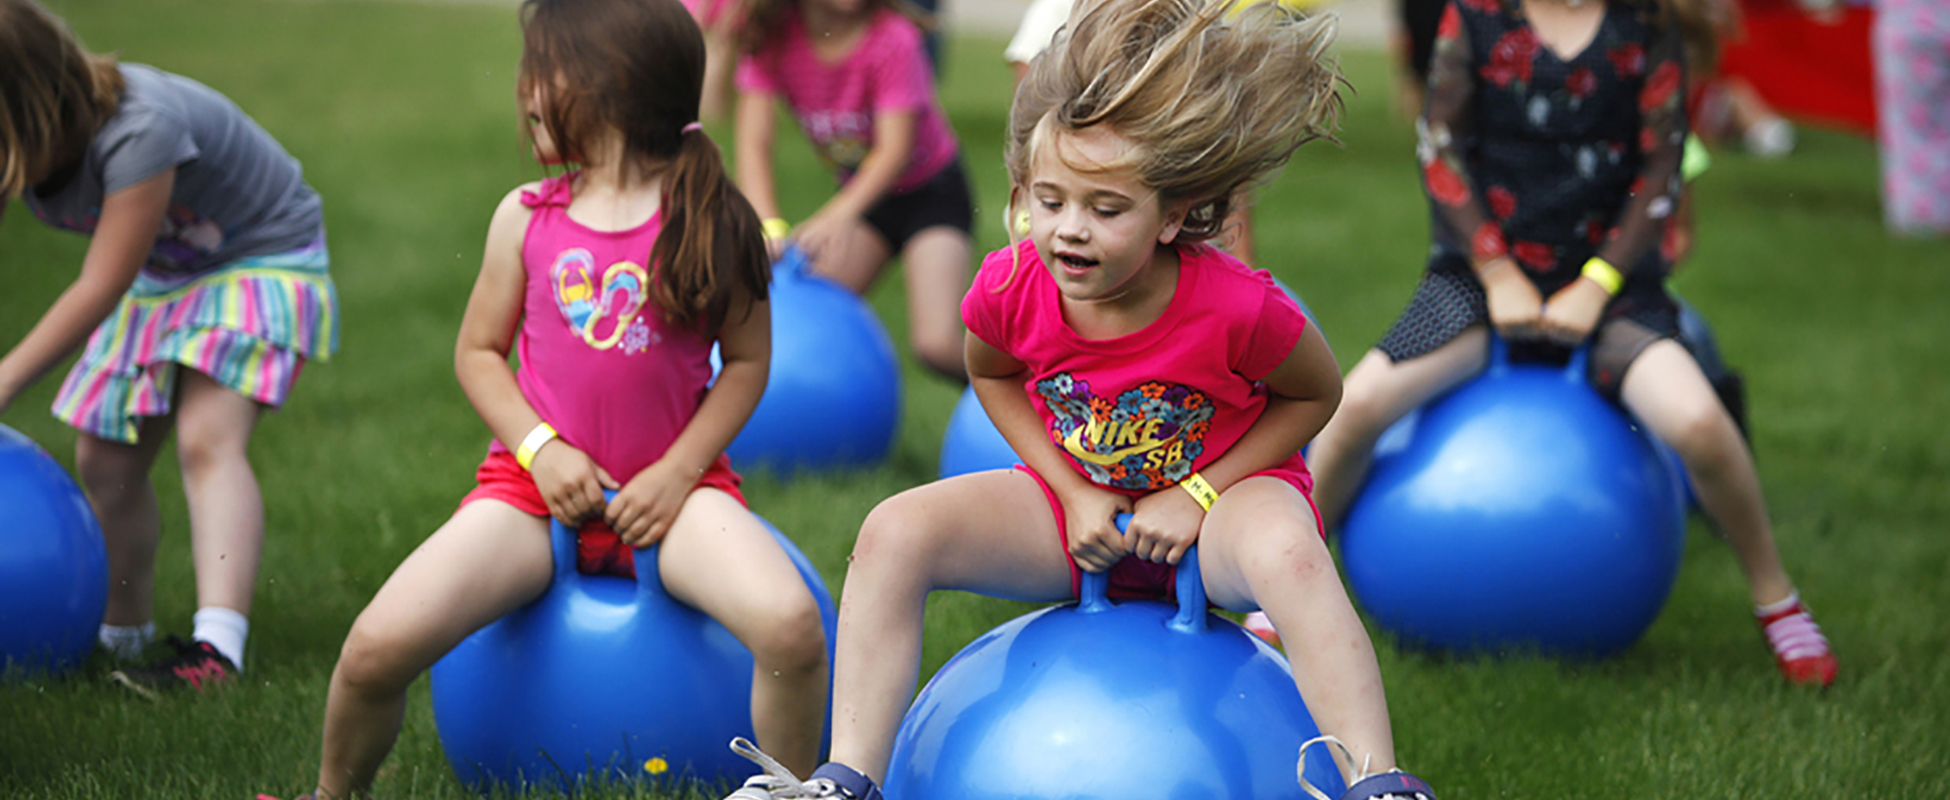 students outside bouncing on top of a large ball